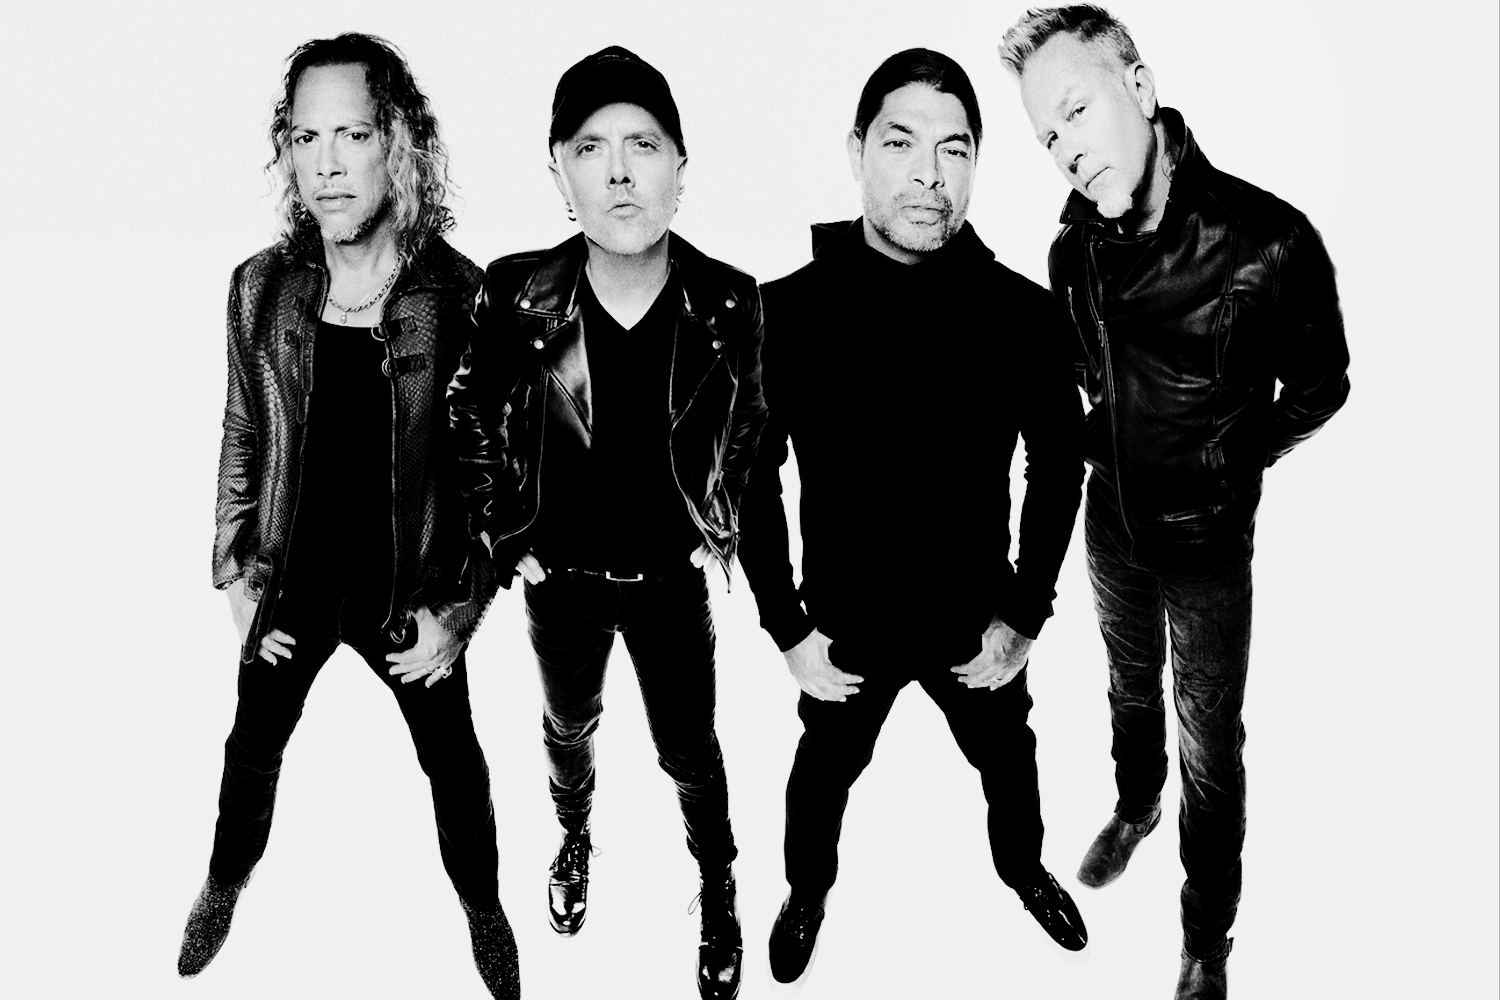 After 3 Decades, Metallica Still Does Things Their Way